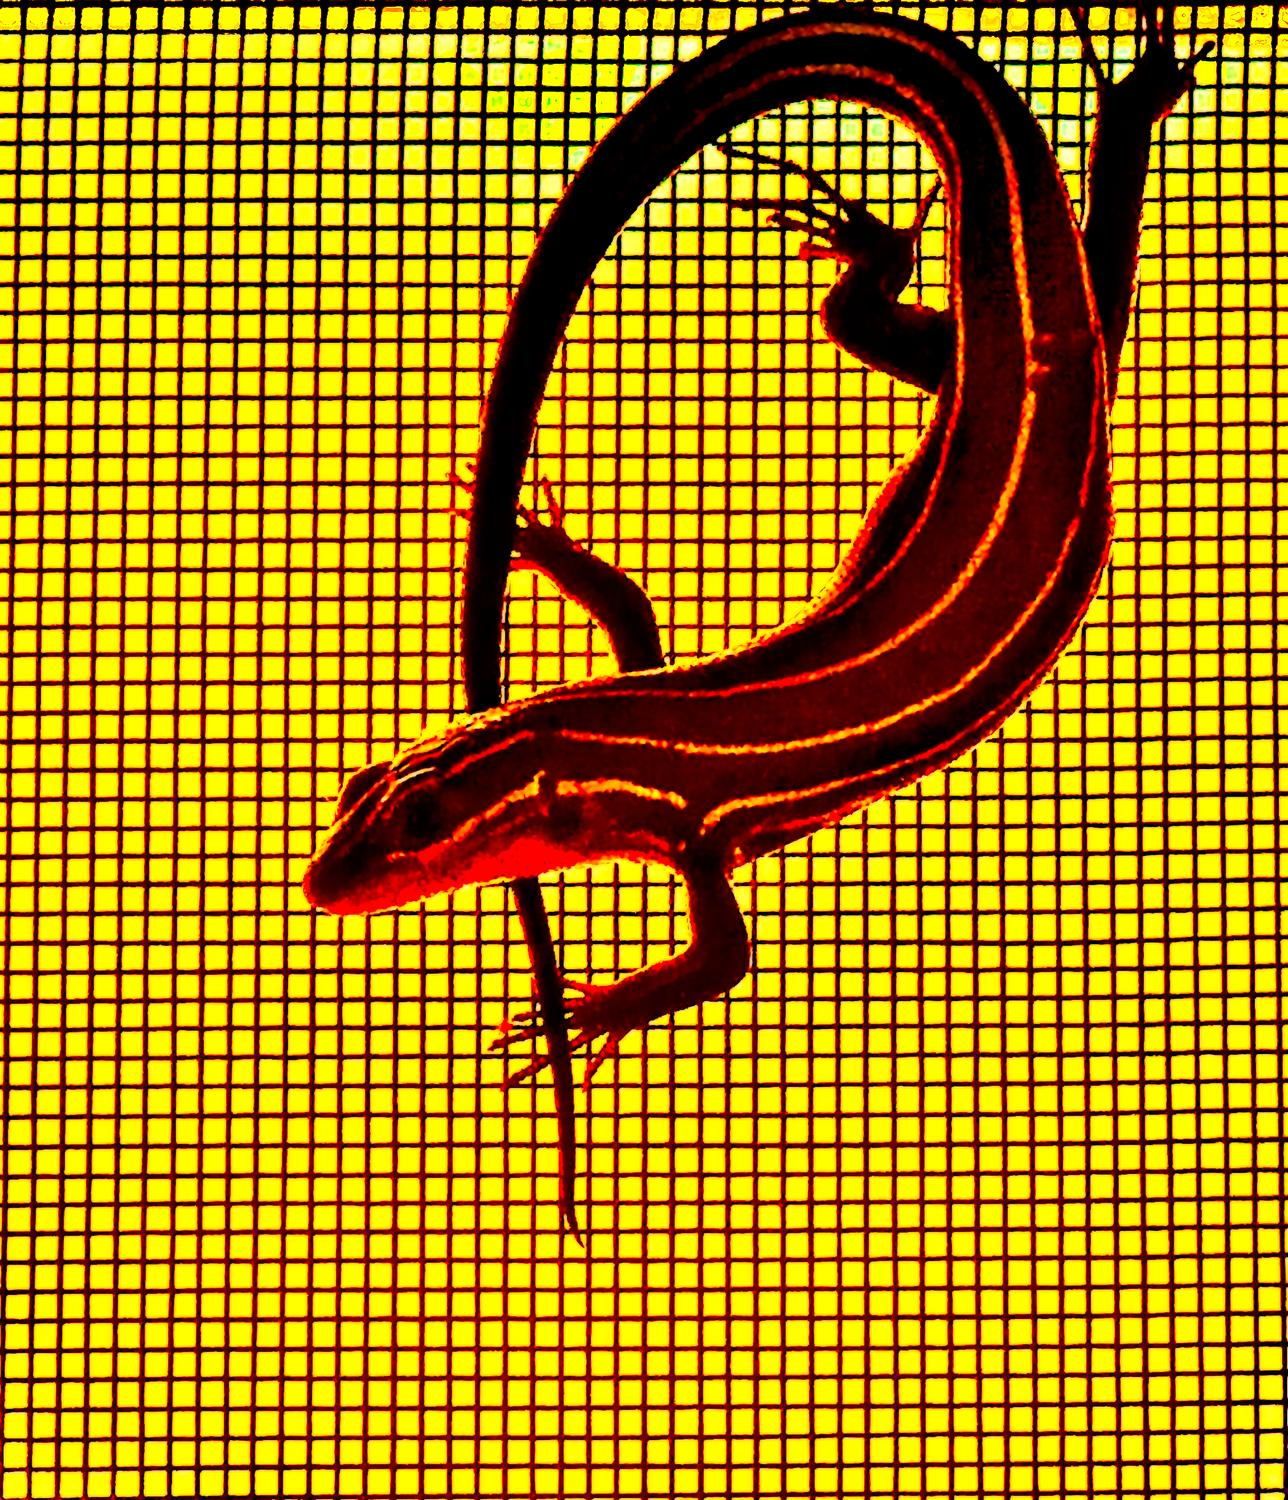 - A red-hot skink, perfect for a summer's day. - Leica C (typ 112) - Panasonic DMC-LF1 - five-lined skink - - - art  - photography - by Tony Karp